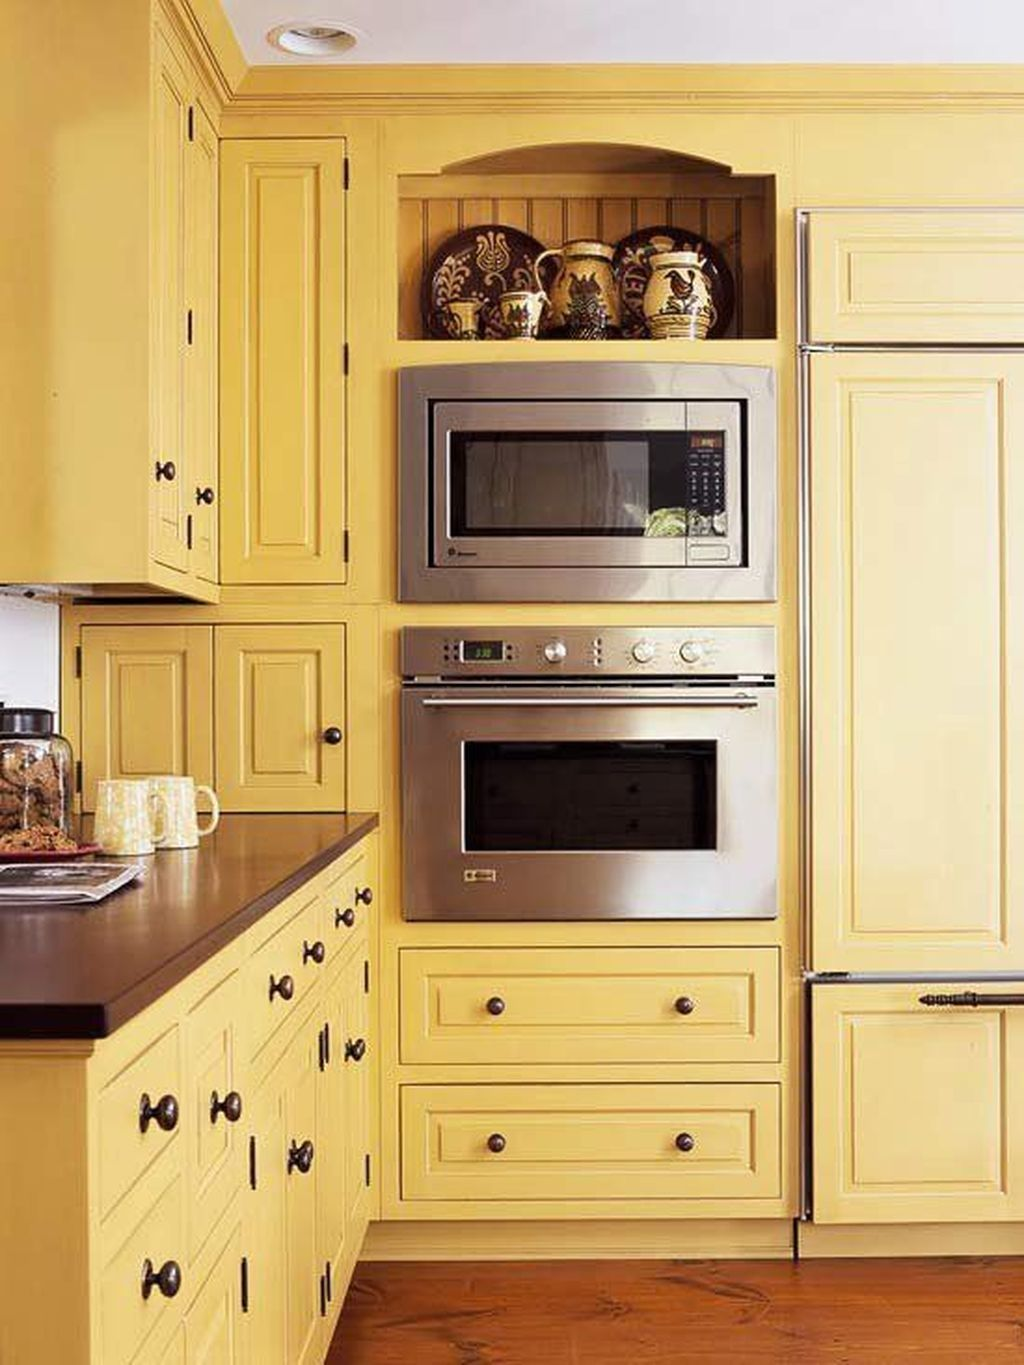 50 Awesome Yellow Kitchen Designs That You Have To See In 2020 Beautiful Kitchen Cabinets Yellow Kitchen Designs Yellow Kitchen Cabinets